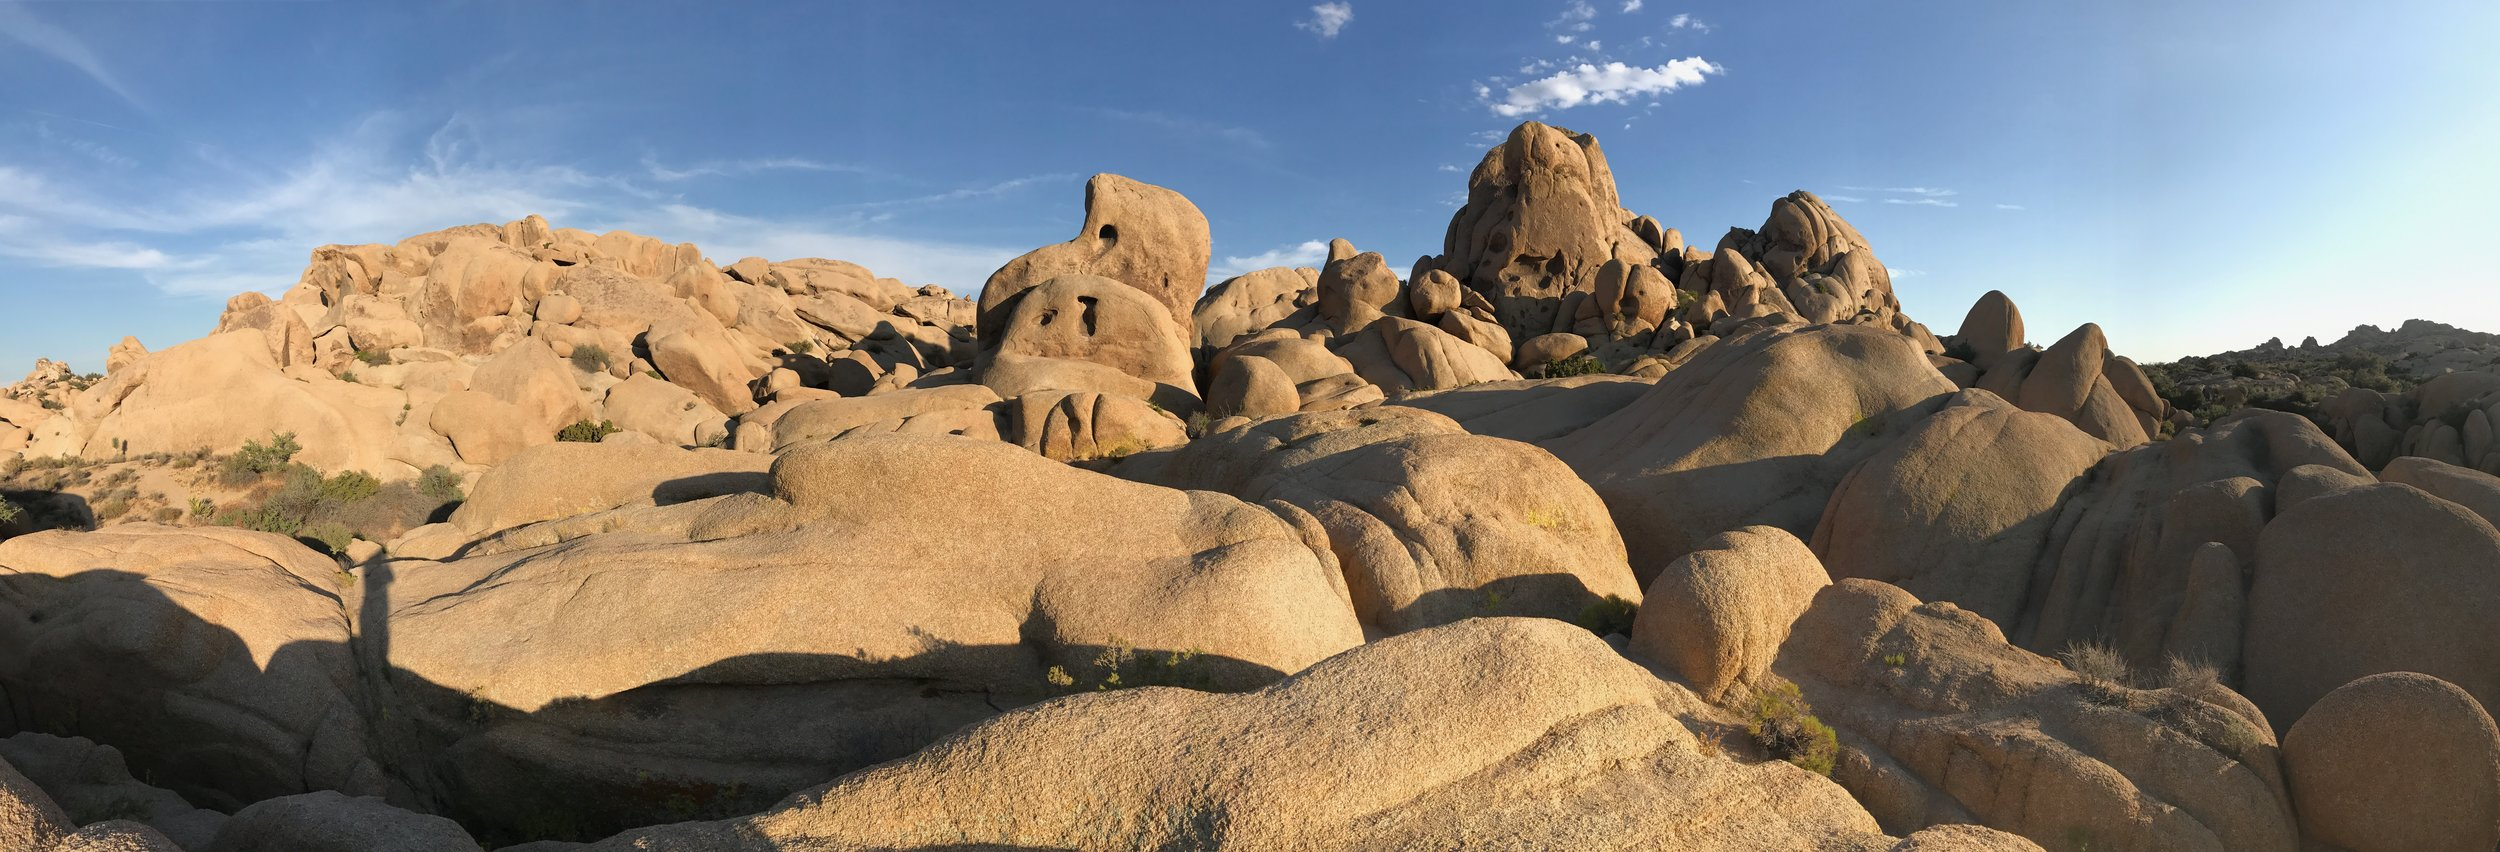 Joshua Tree Park, California